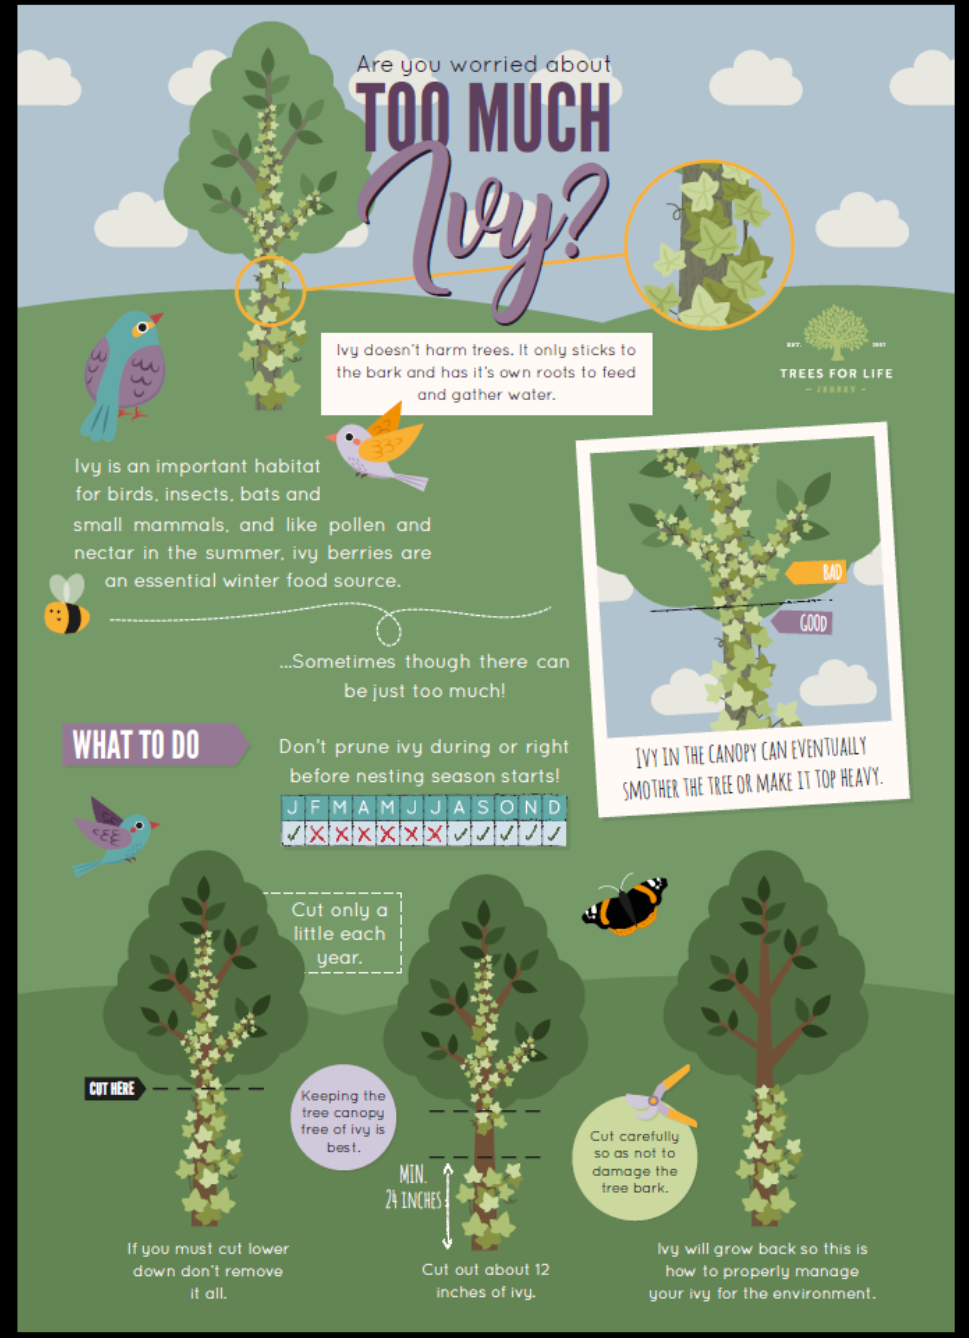 Jersey Trees for Life Ivy Poster